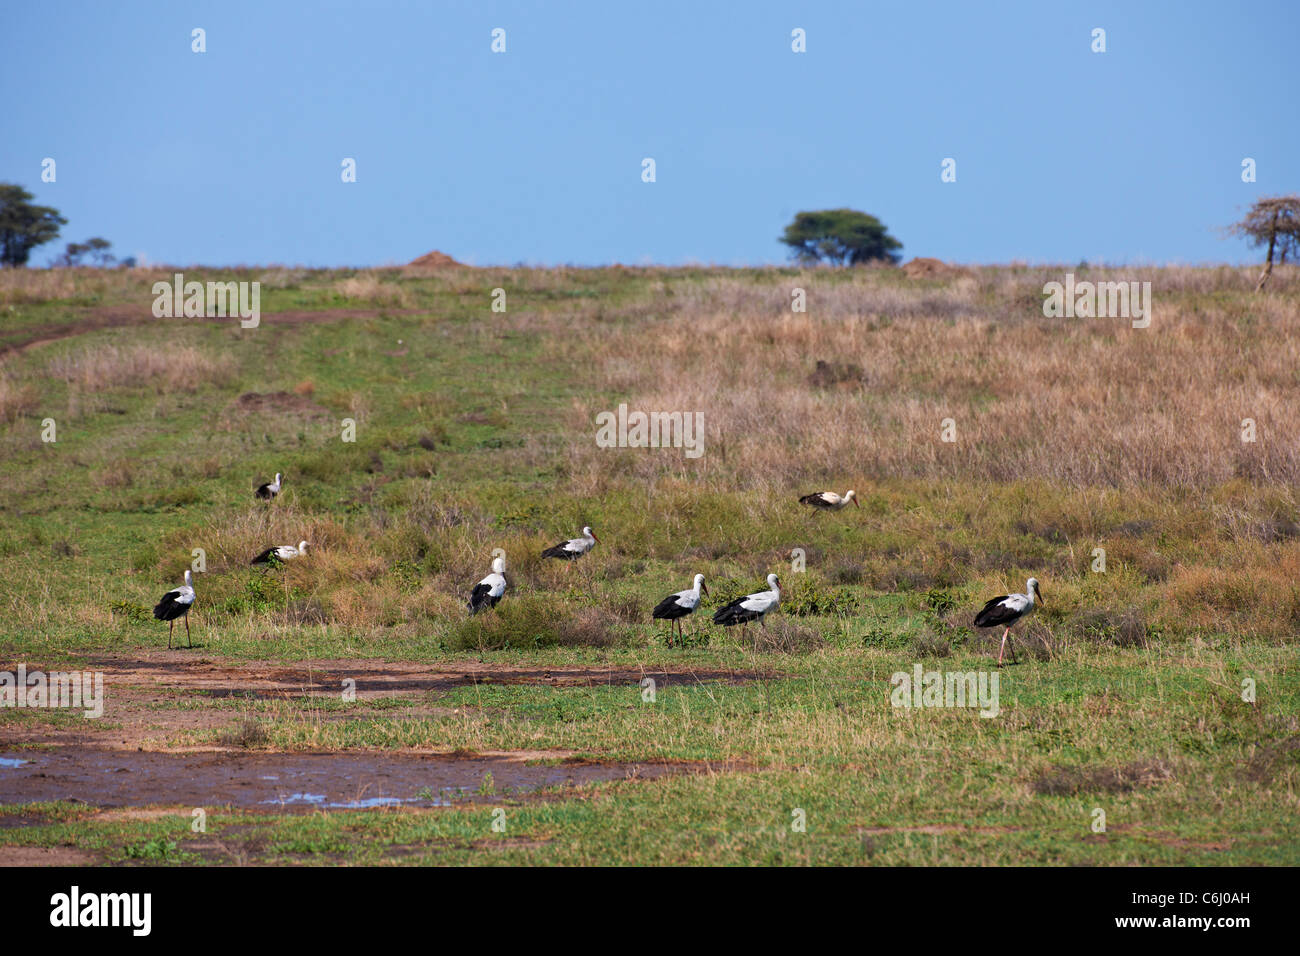 group of feeding White Stork, Ciconia ciconia, Serengeti, Tanzania, Africa - Stock Image